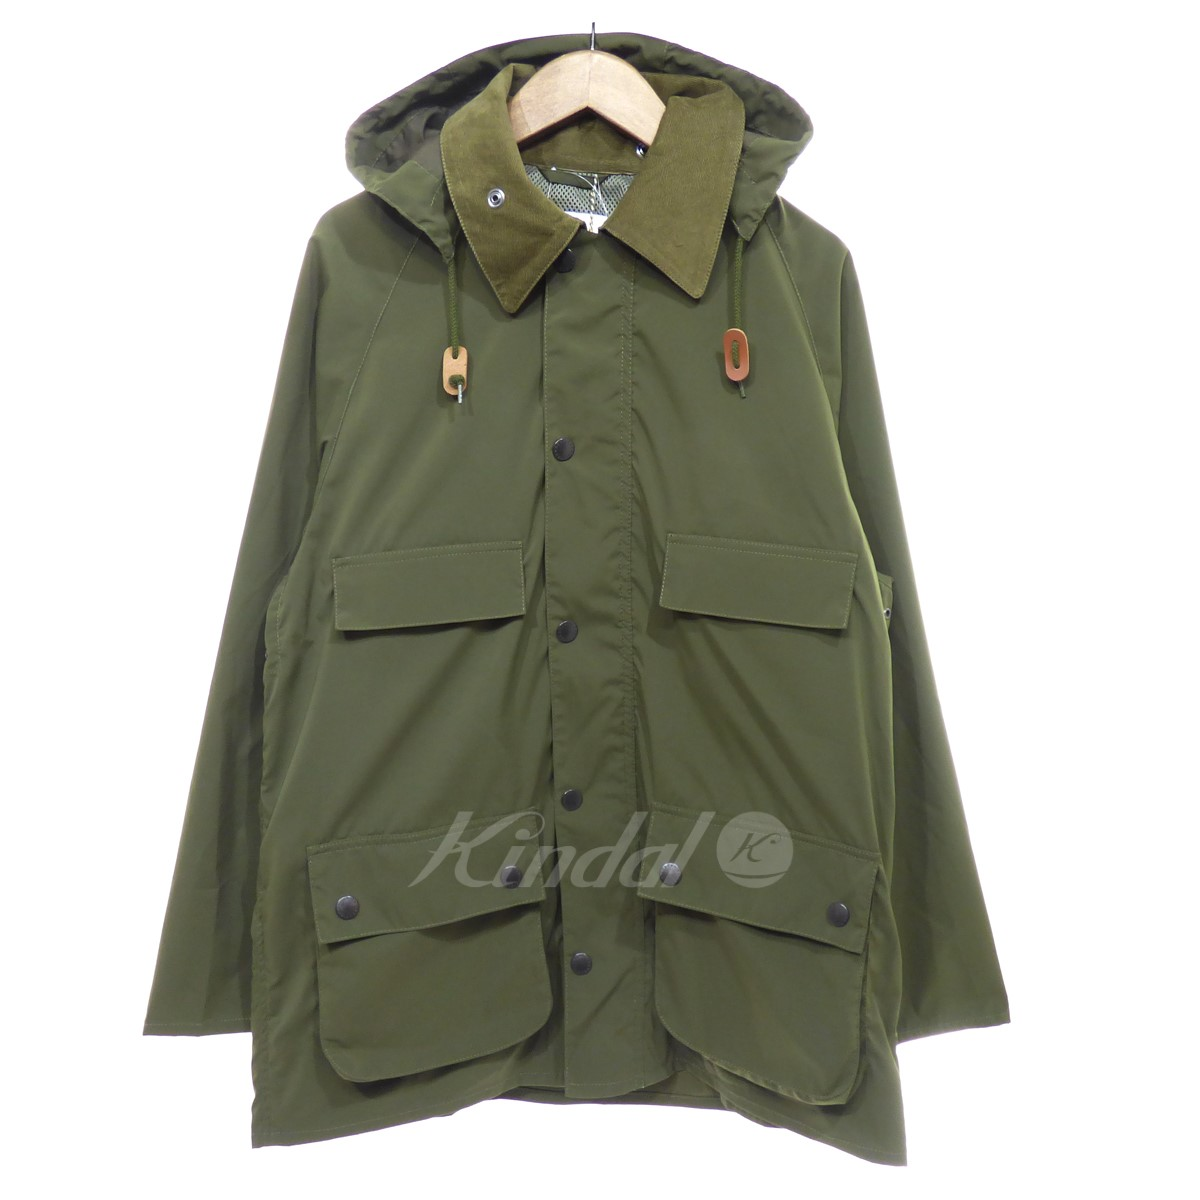 【中古】Barbour × JOURNAL STANDARD 【2018S/S】ナイロンコート 【送料無料】 【122775】 【KIND1550】